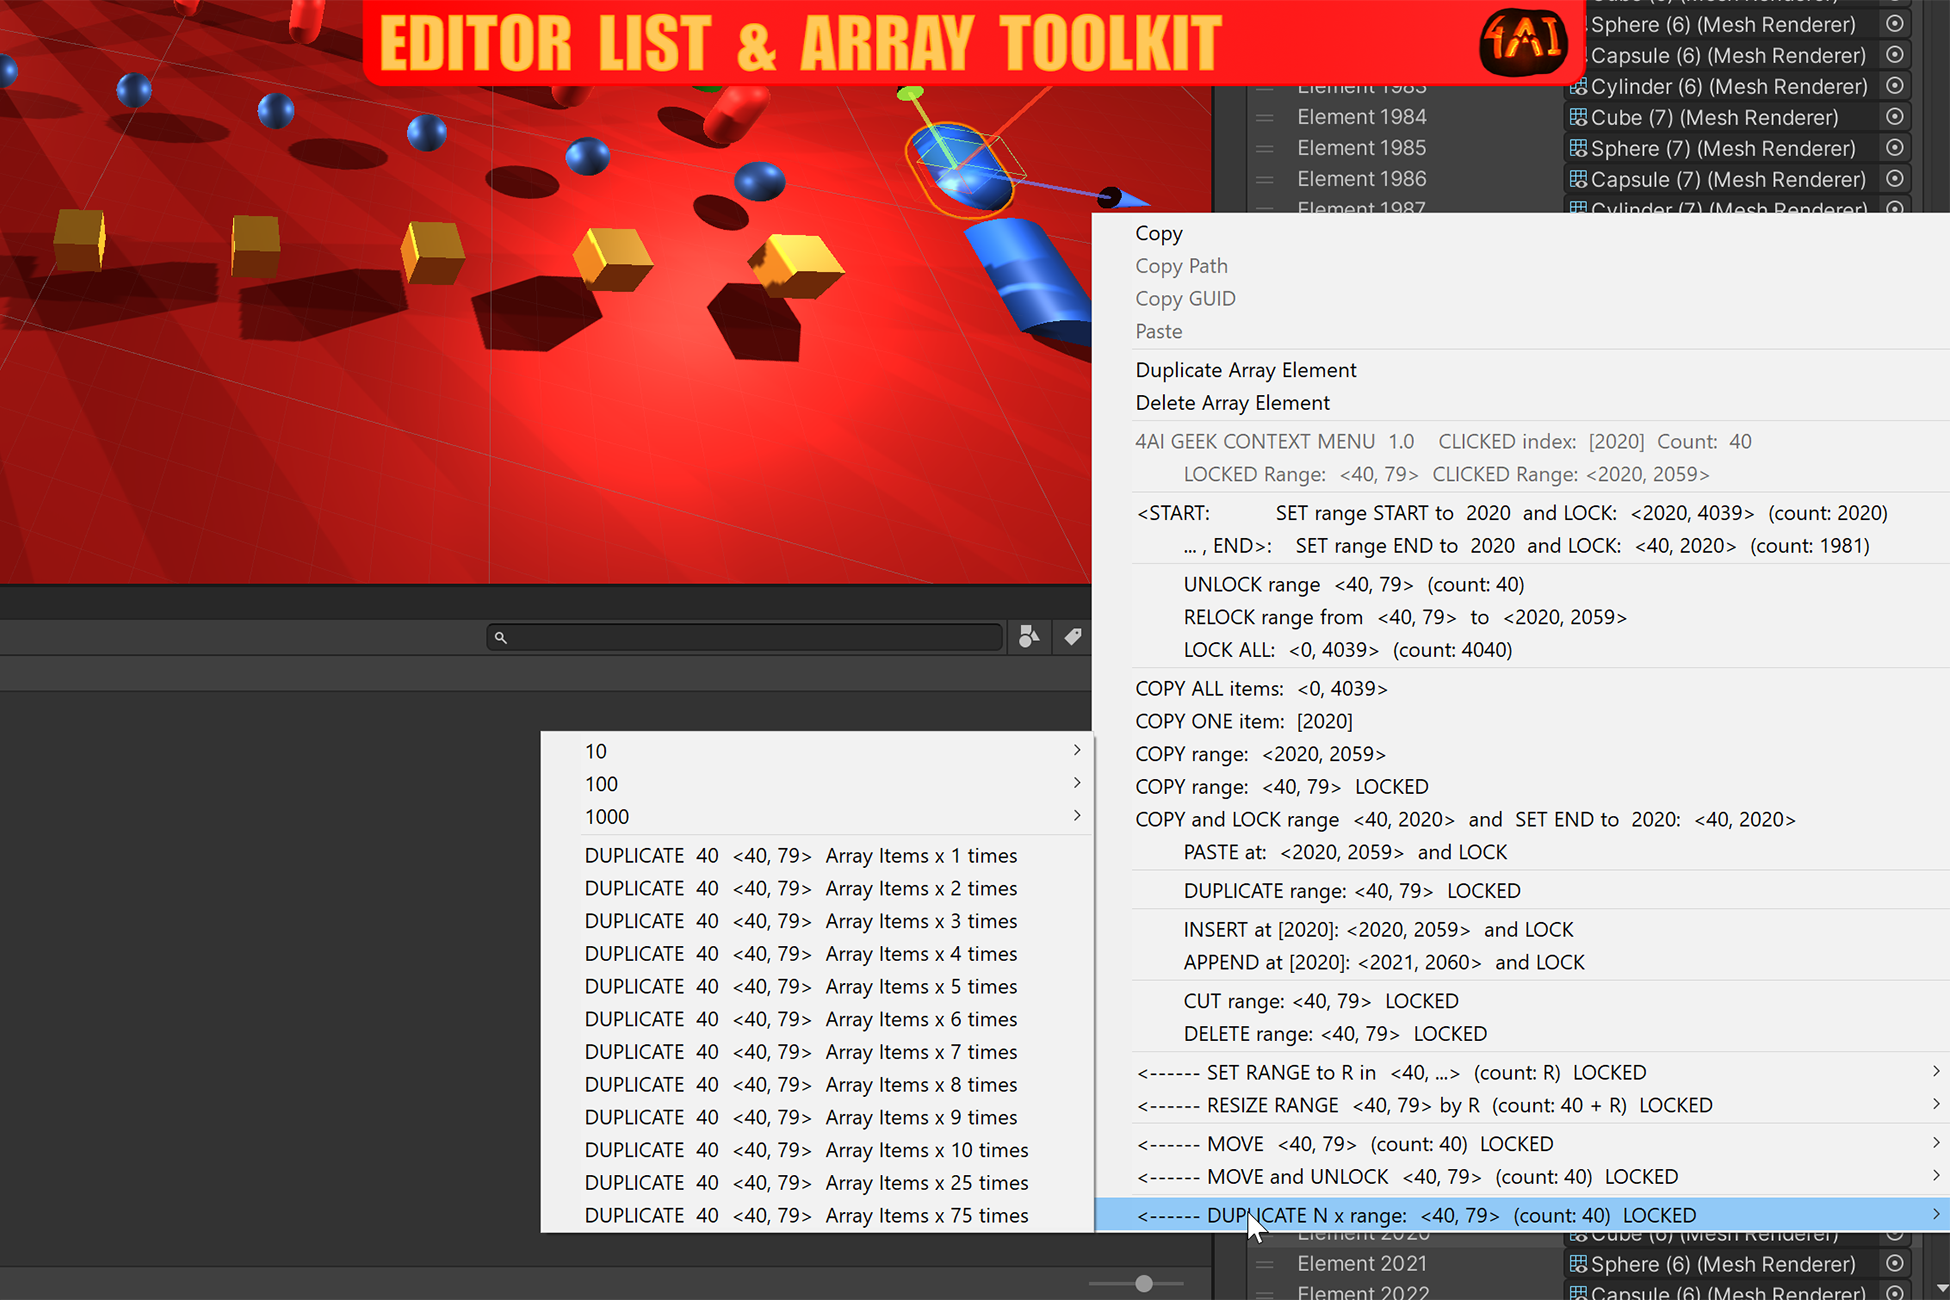 editor-list-array-toolkit-58.png